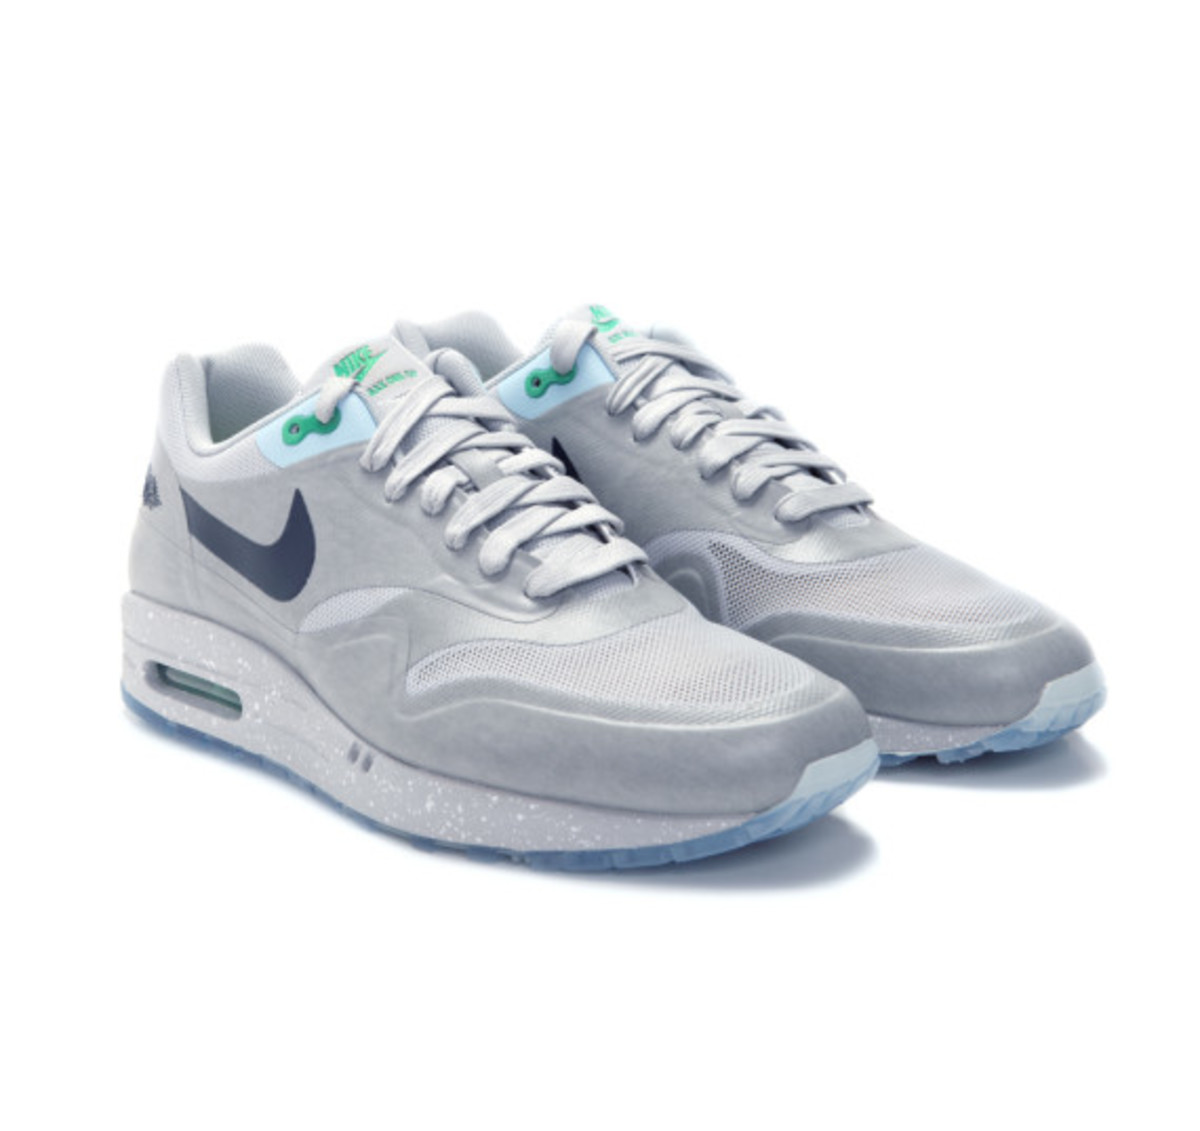 clot-nike-air-max-1-sp-002